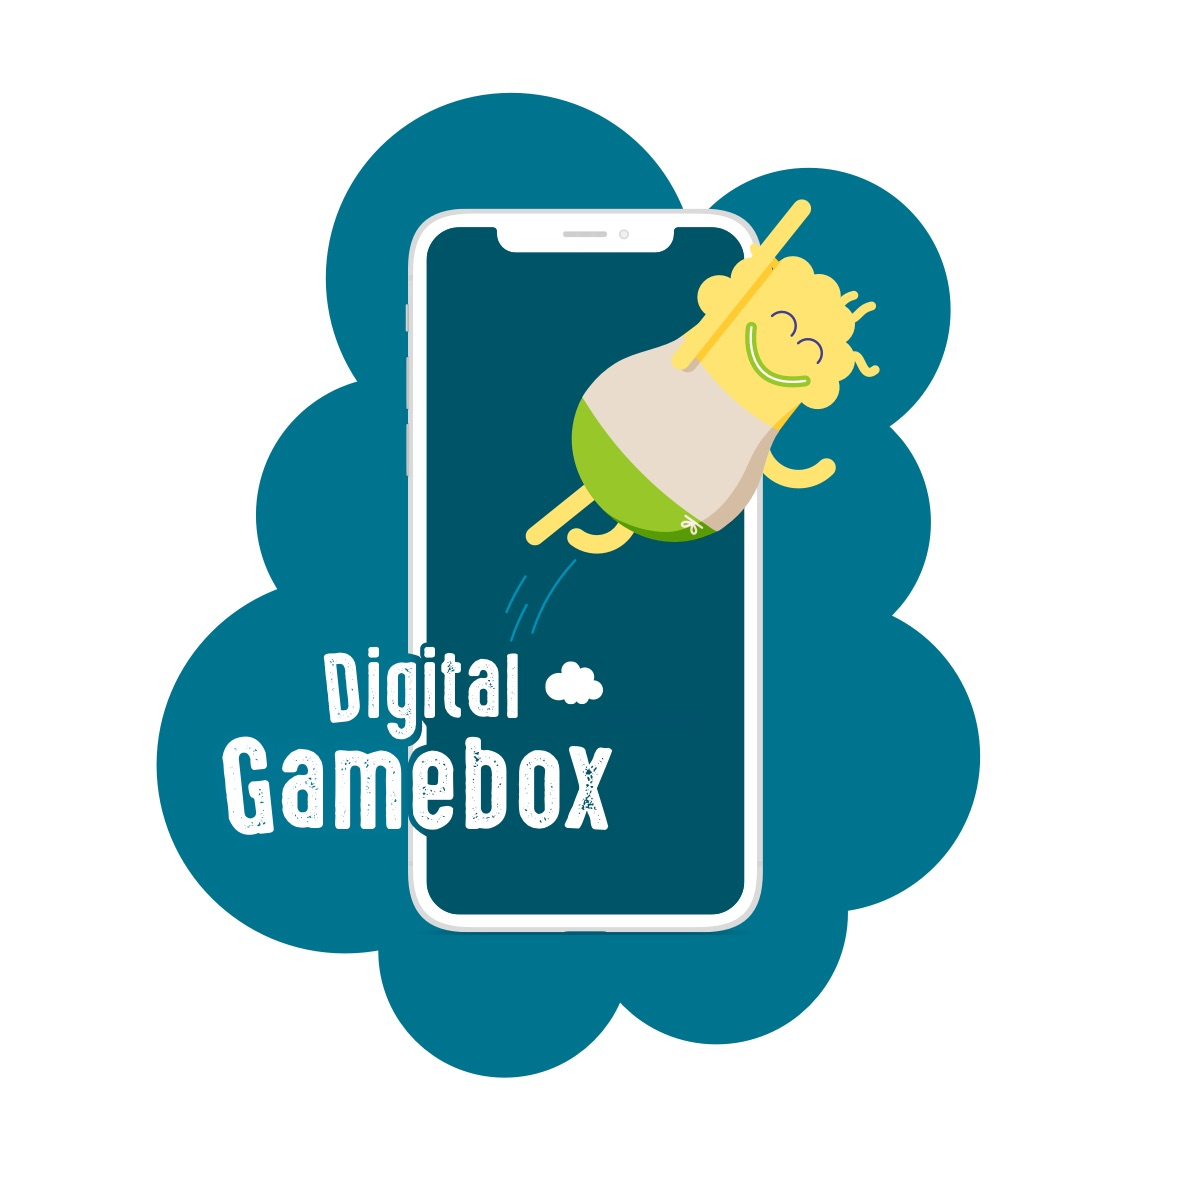 Digital Game Box